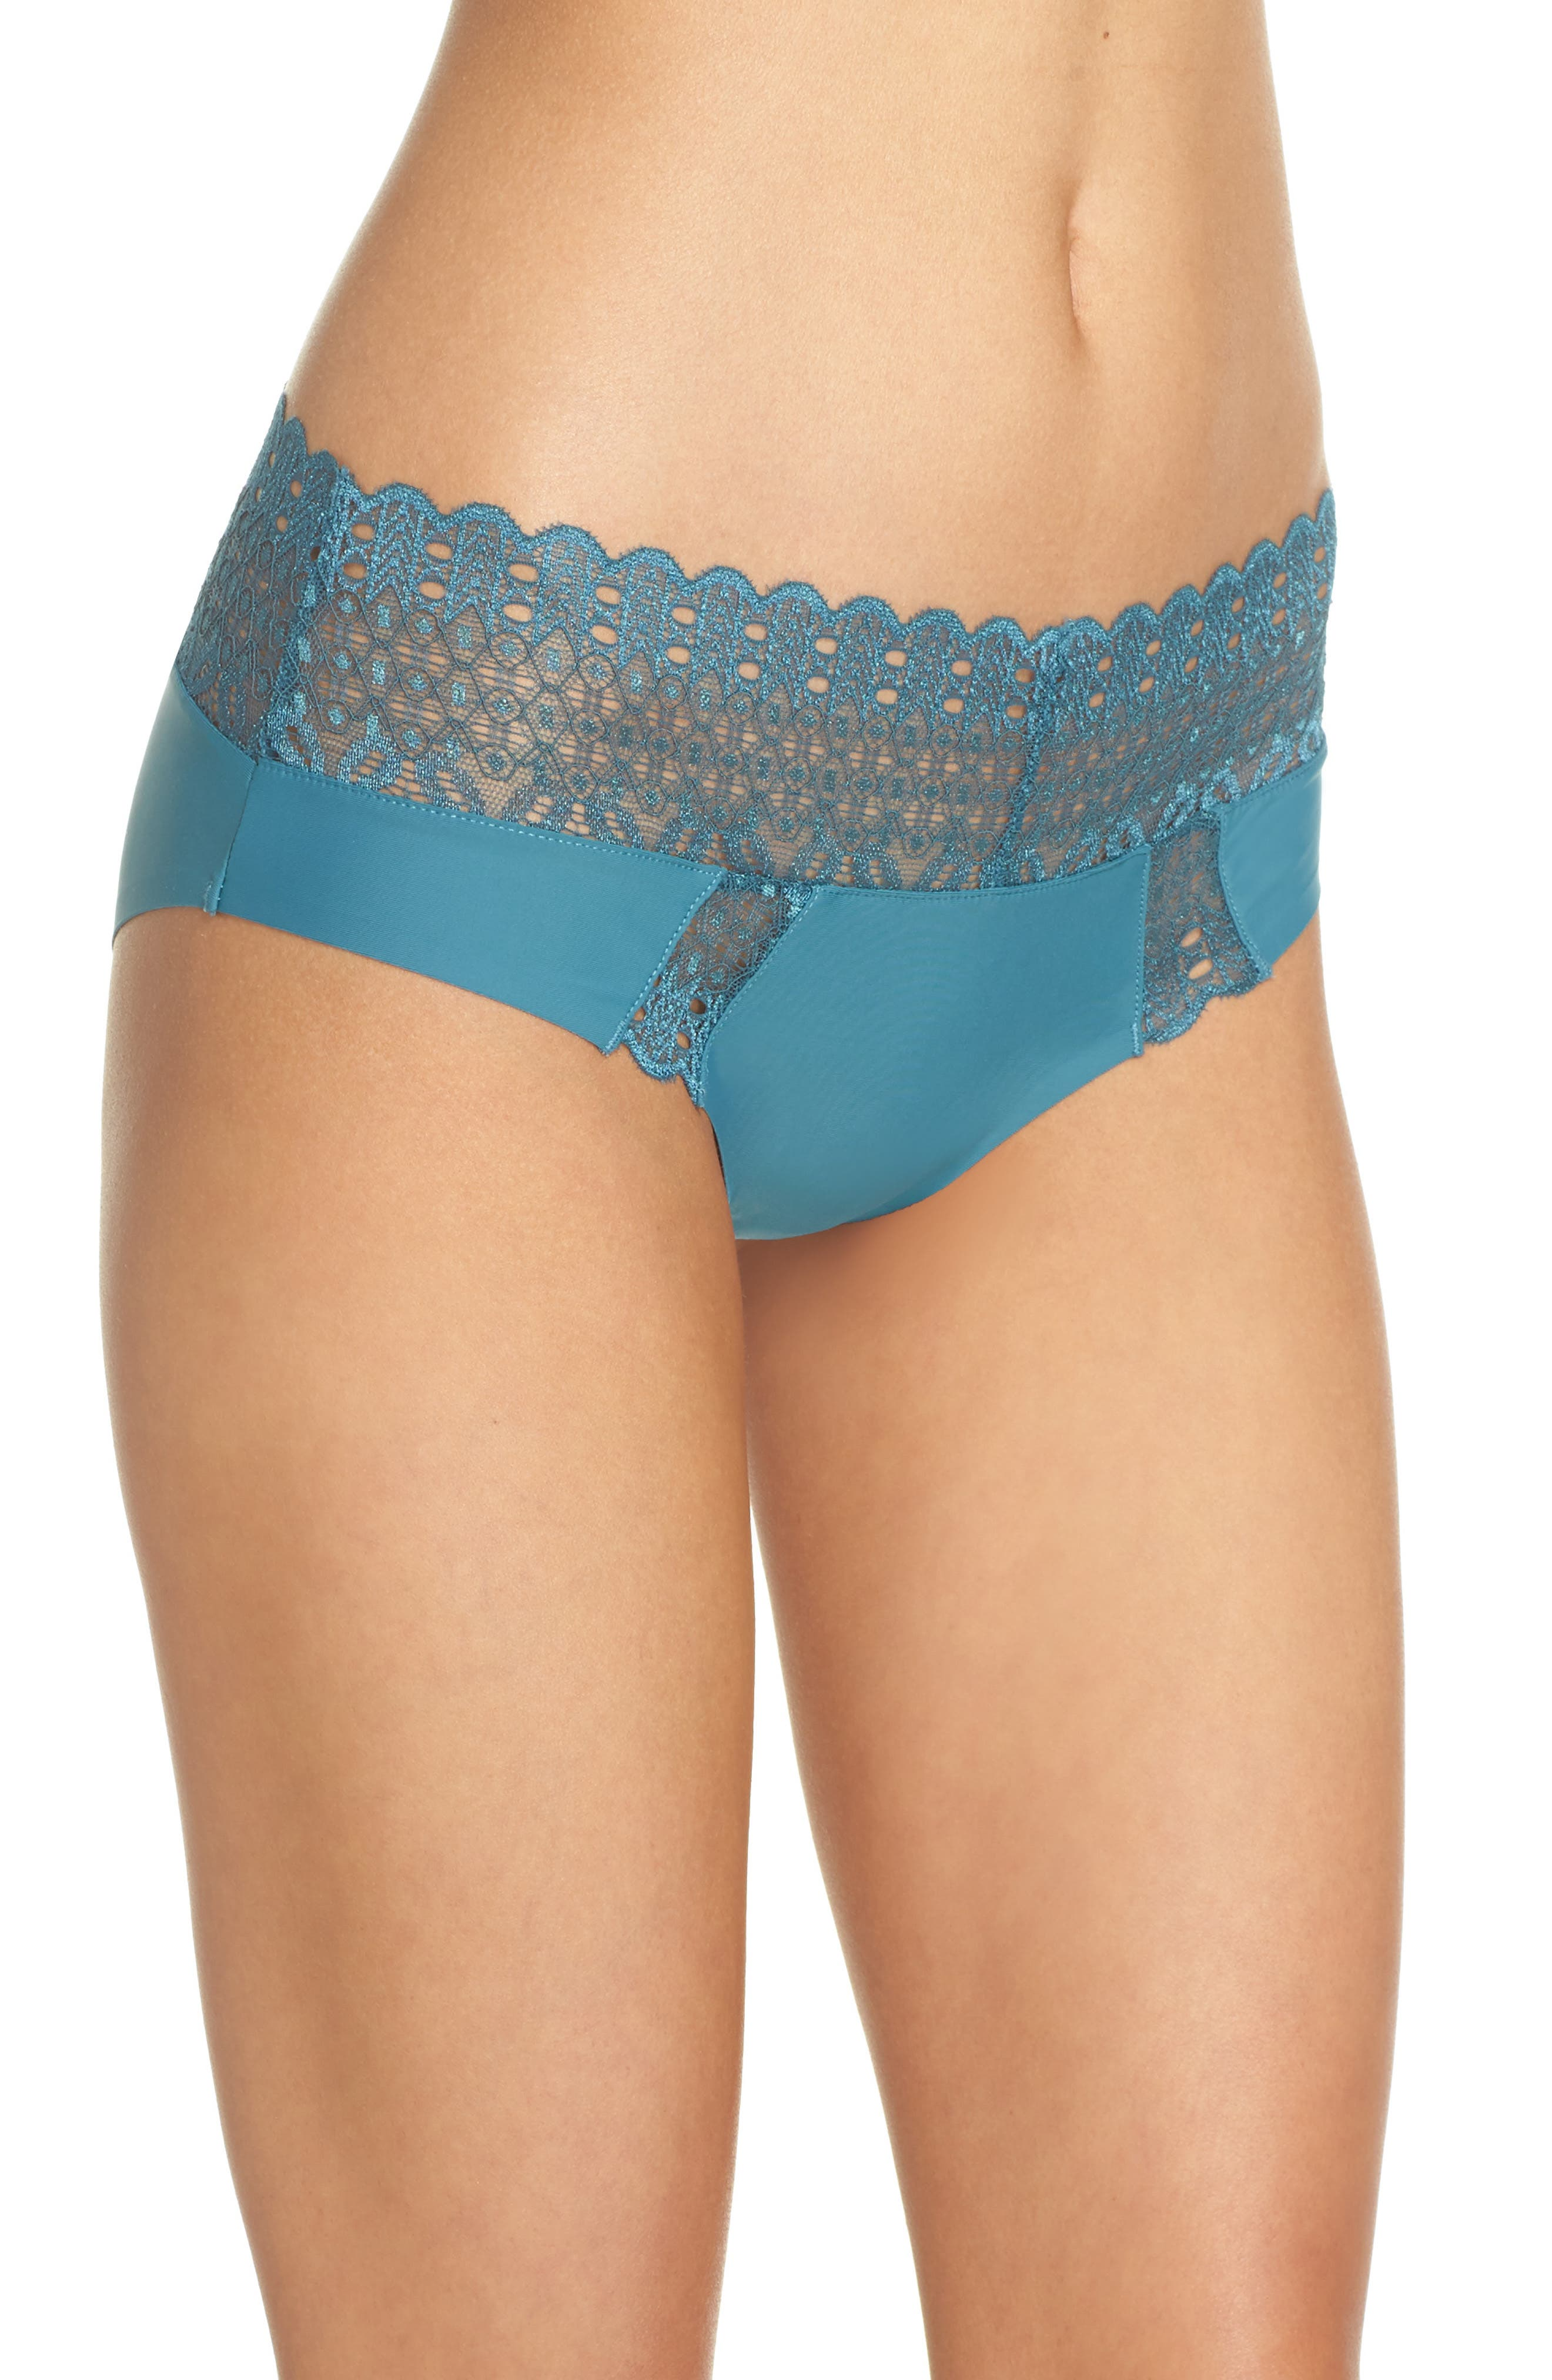 Lace Hipster Briefs,                             Alternate thumbnail 3, color,                             Love Fern